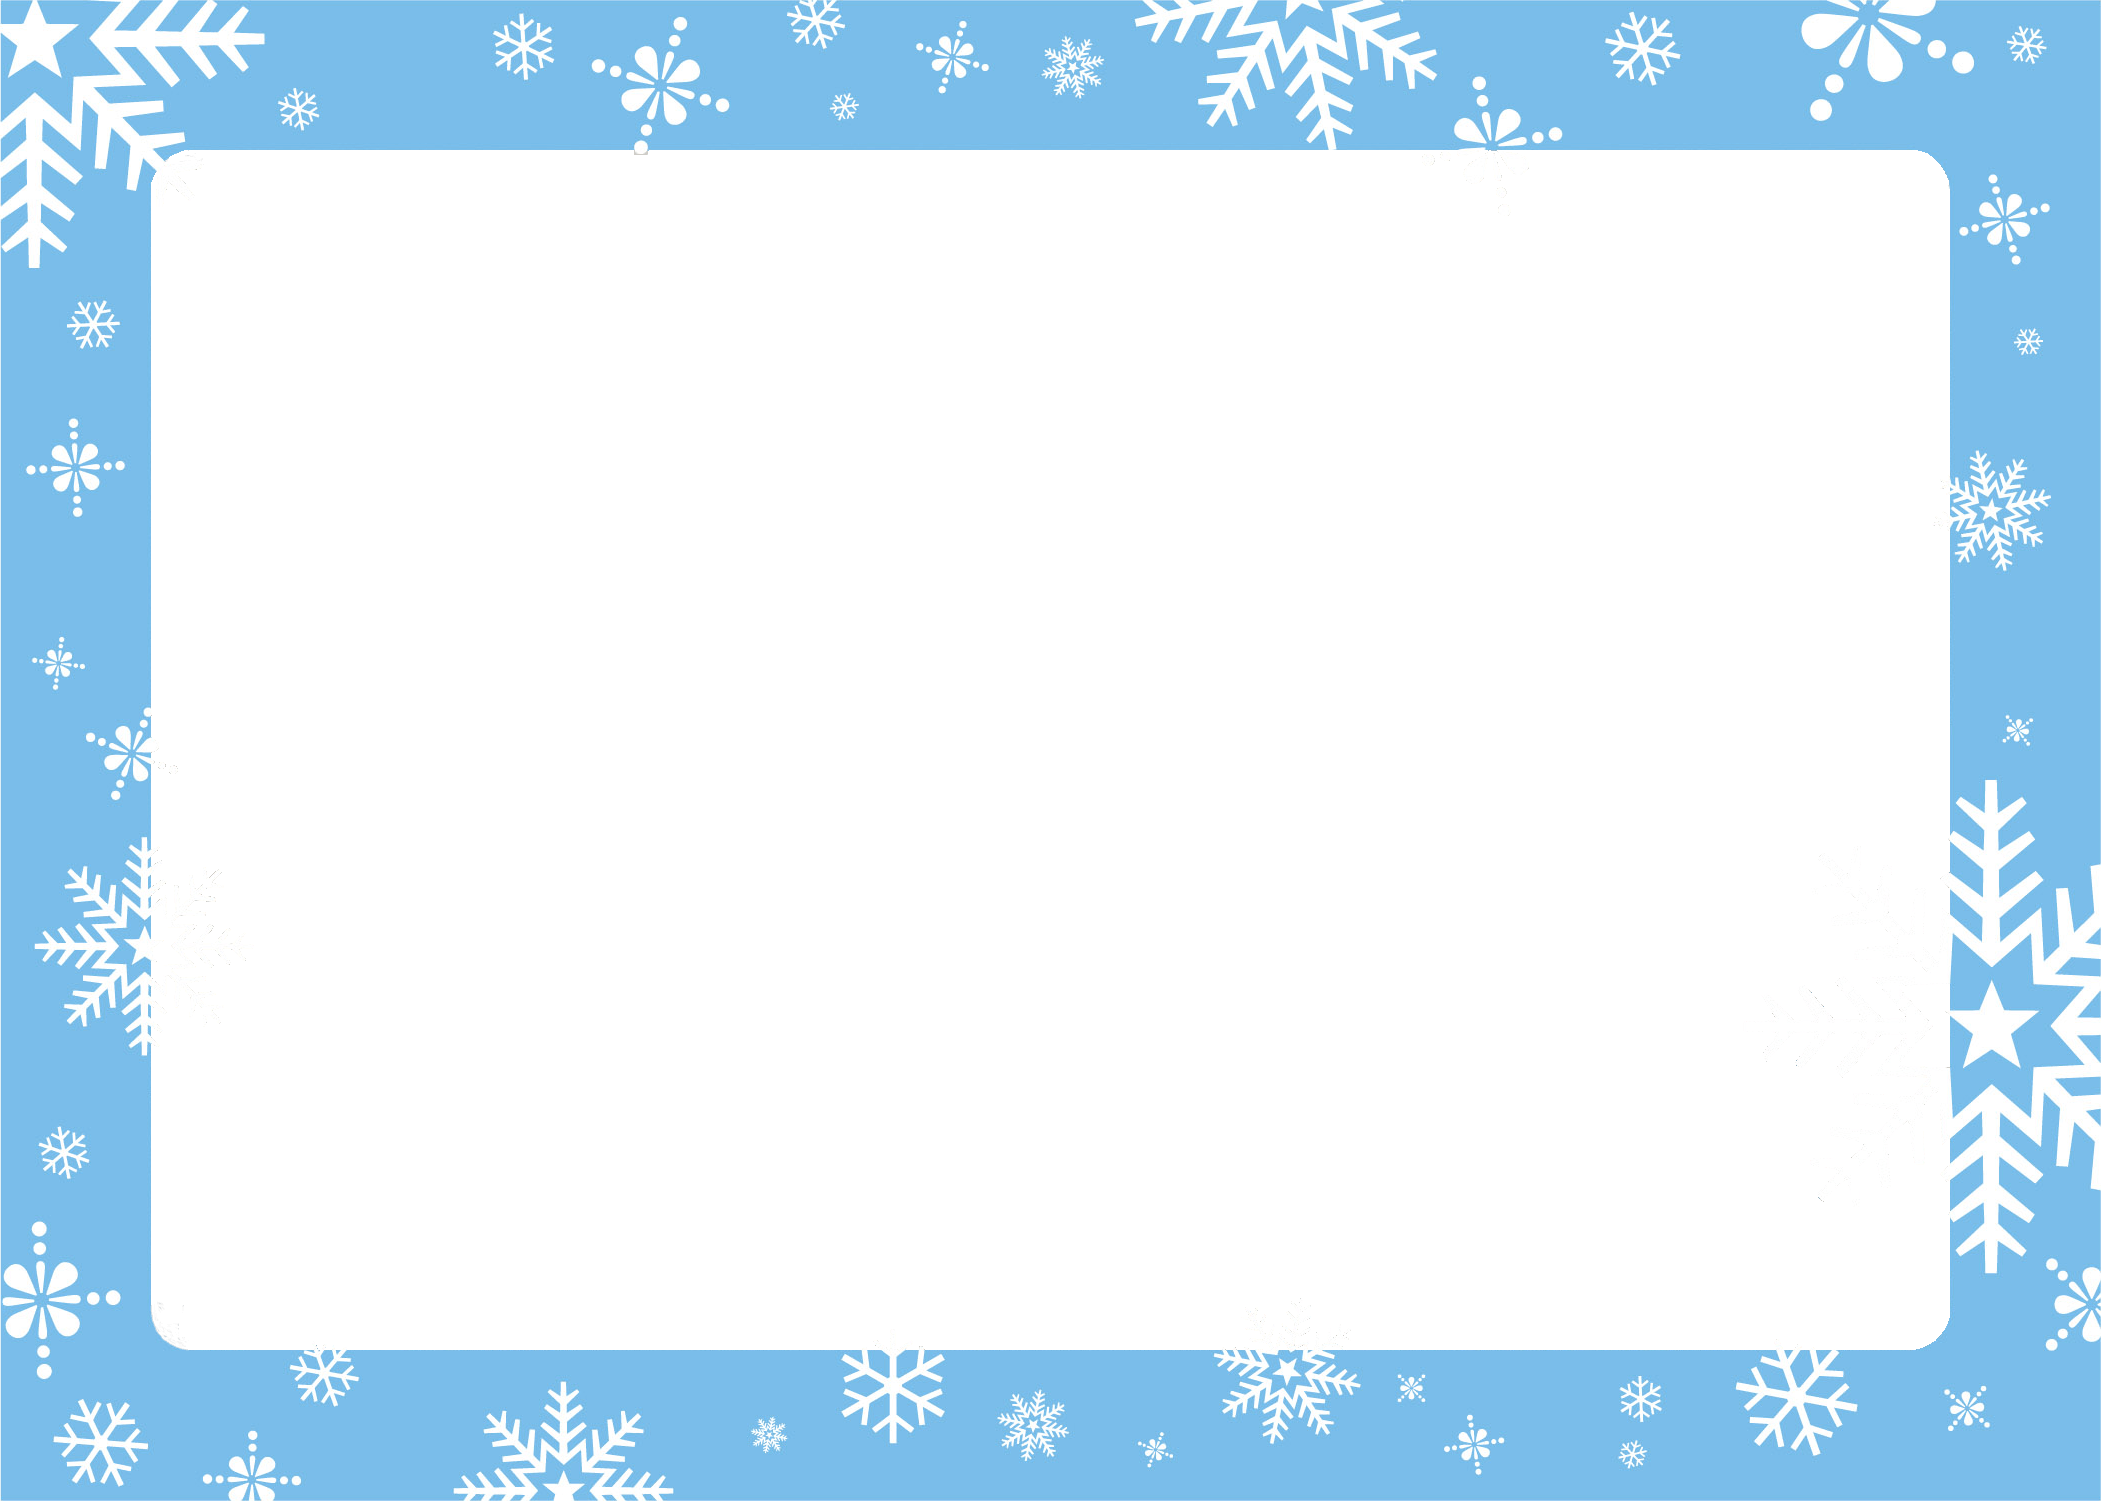 Frozen border png. Free template certificate artwork